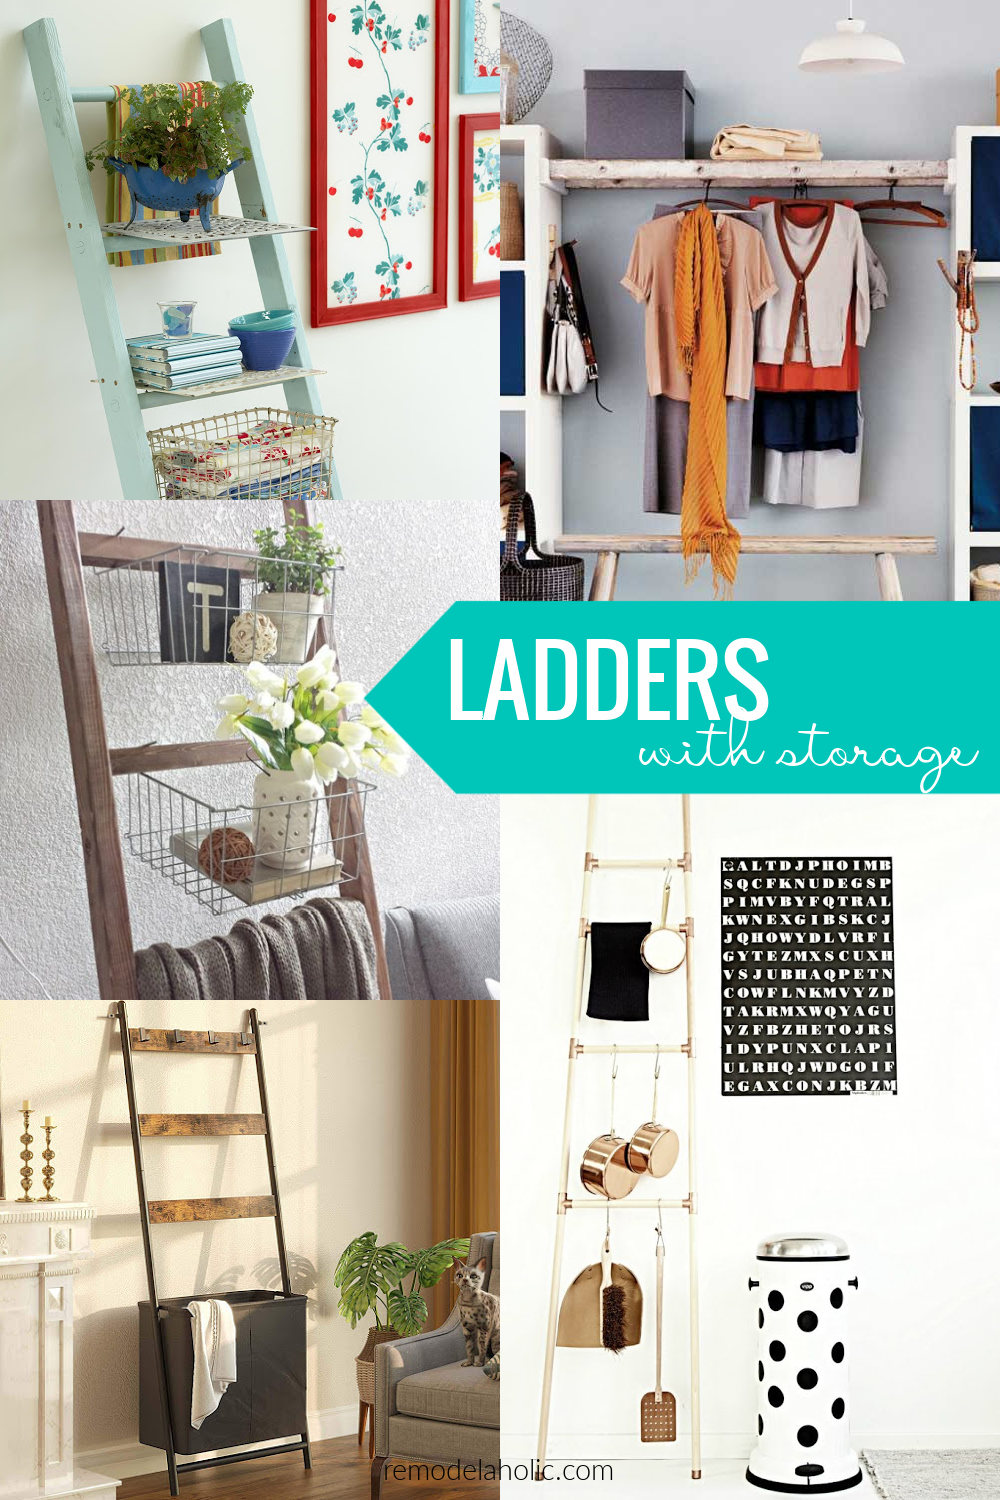 Wood Blanket Ladder Ideas With Storage Baskets Bins And Hooks, Remodelaholic